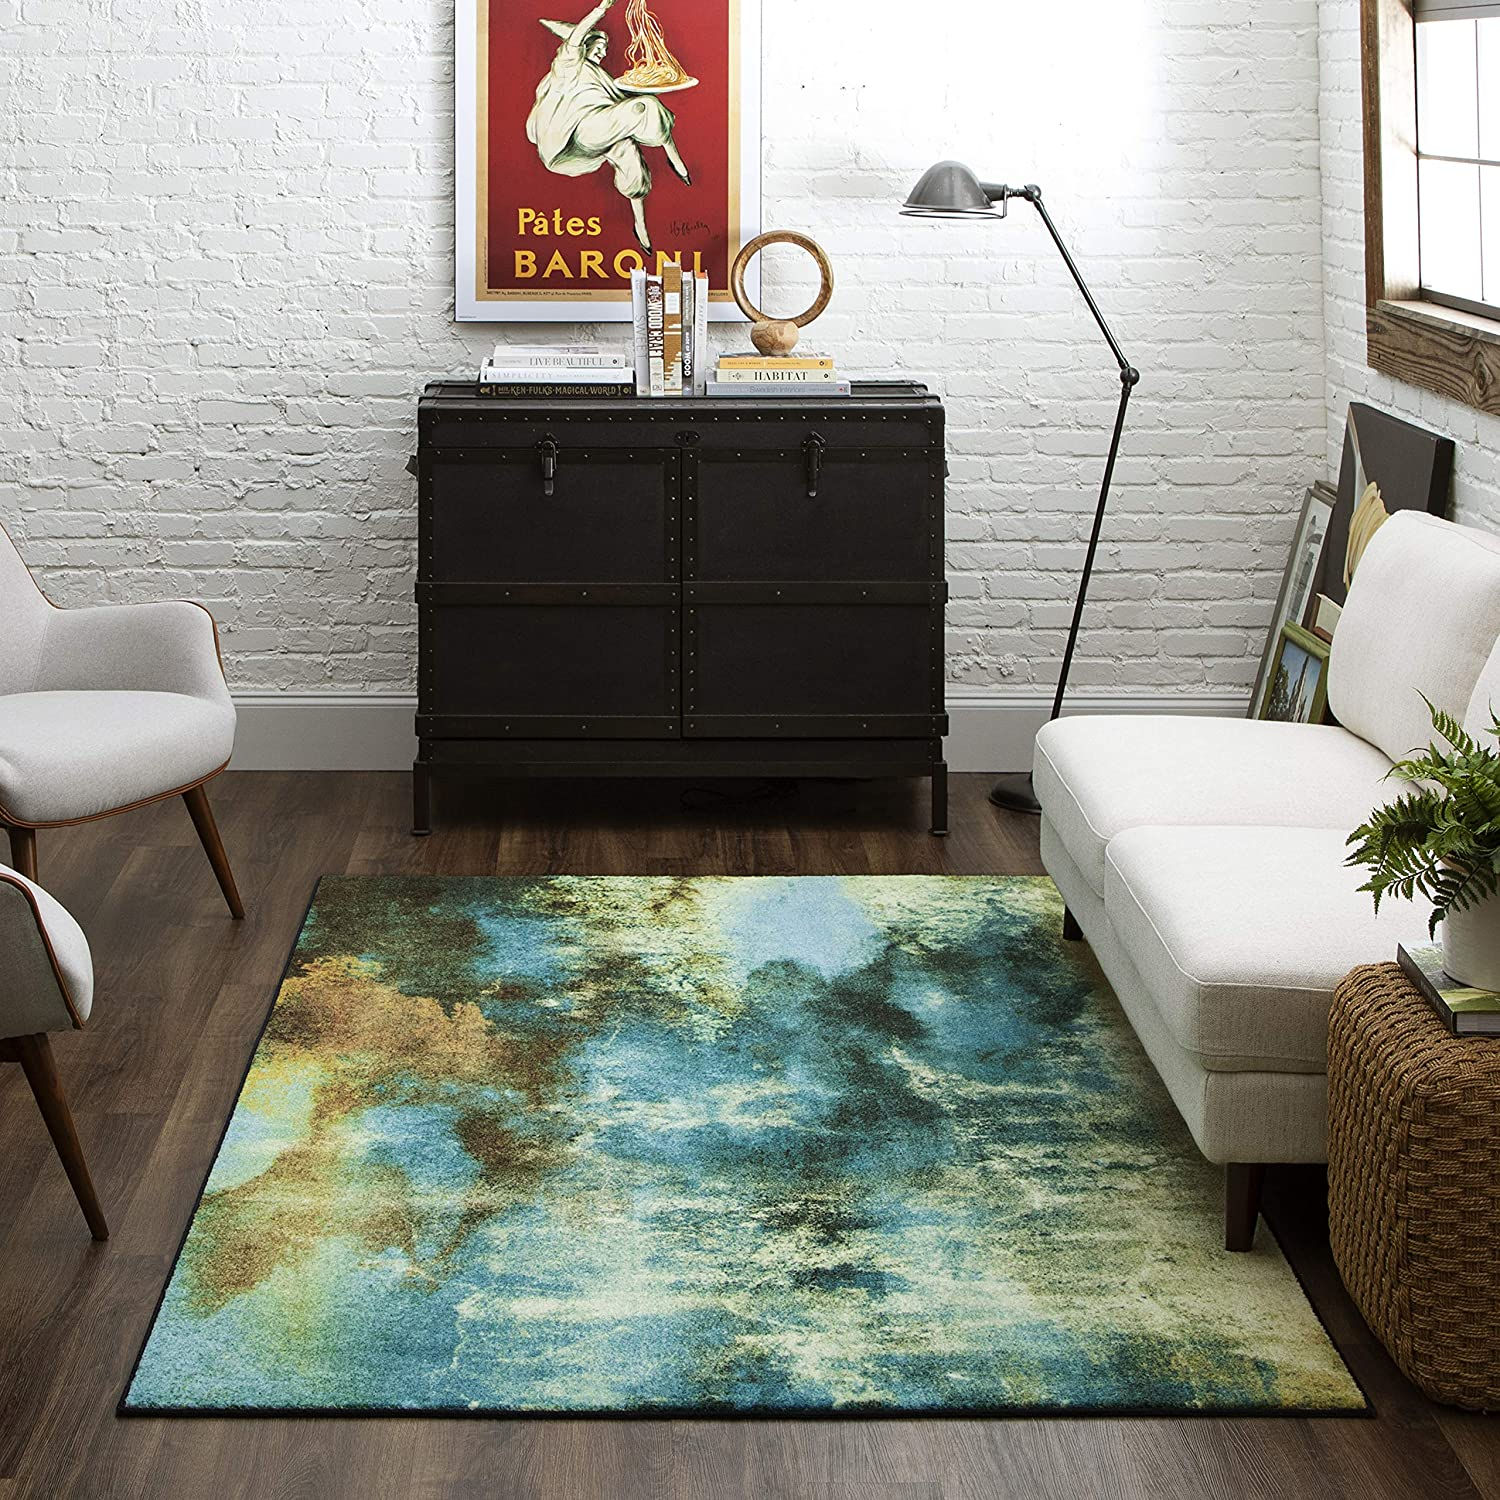 Mohawk Glaicer Area Rug, 20'x20', Water